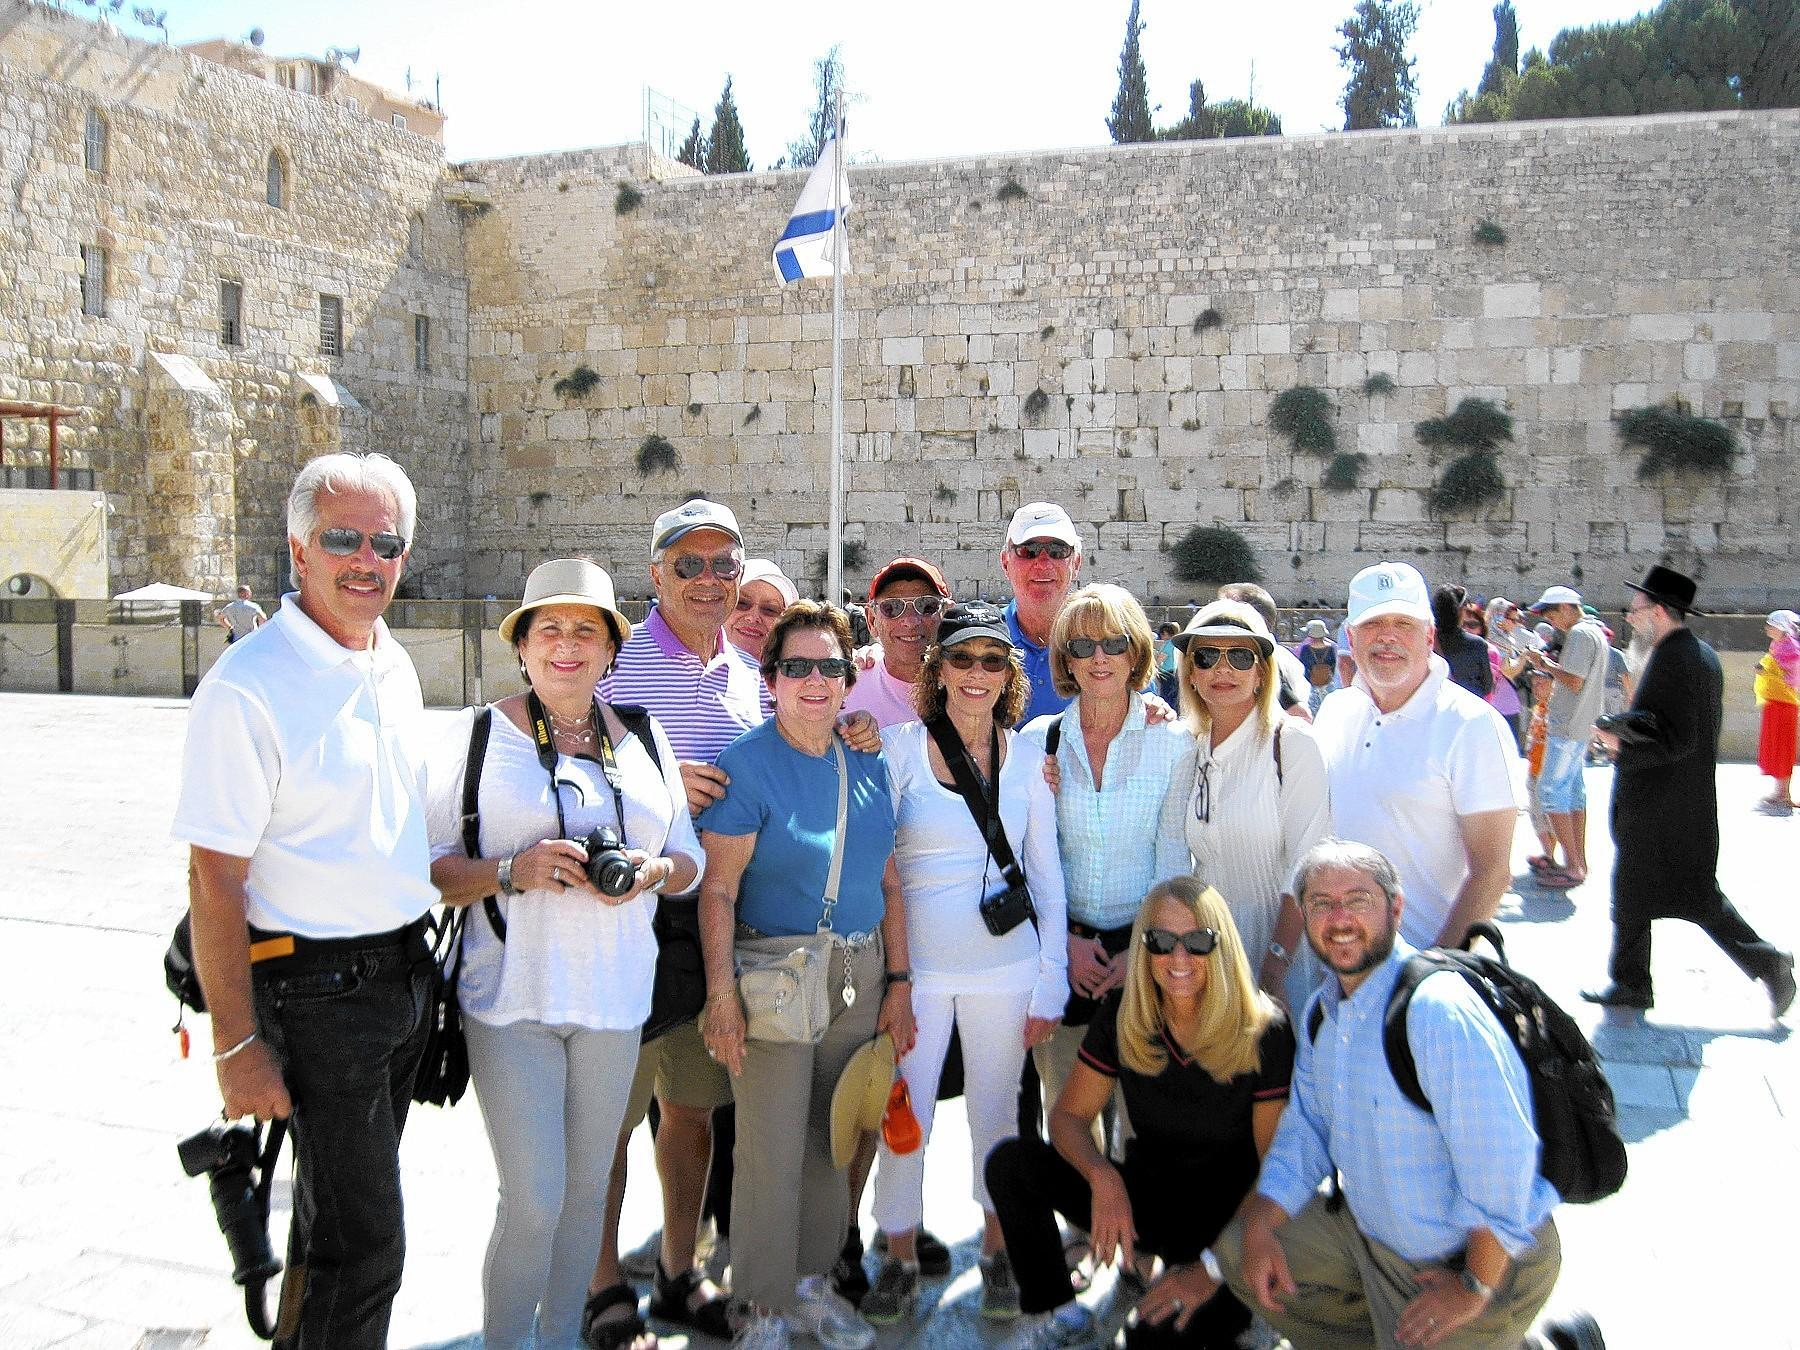 Participants on the June 2013 Boomers Birthright tour to Israel with tour leader Rabbi Baruch Plotkin (bottom right).